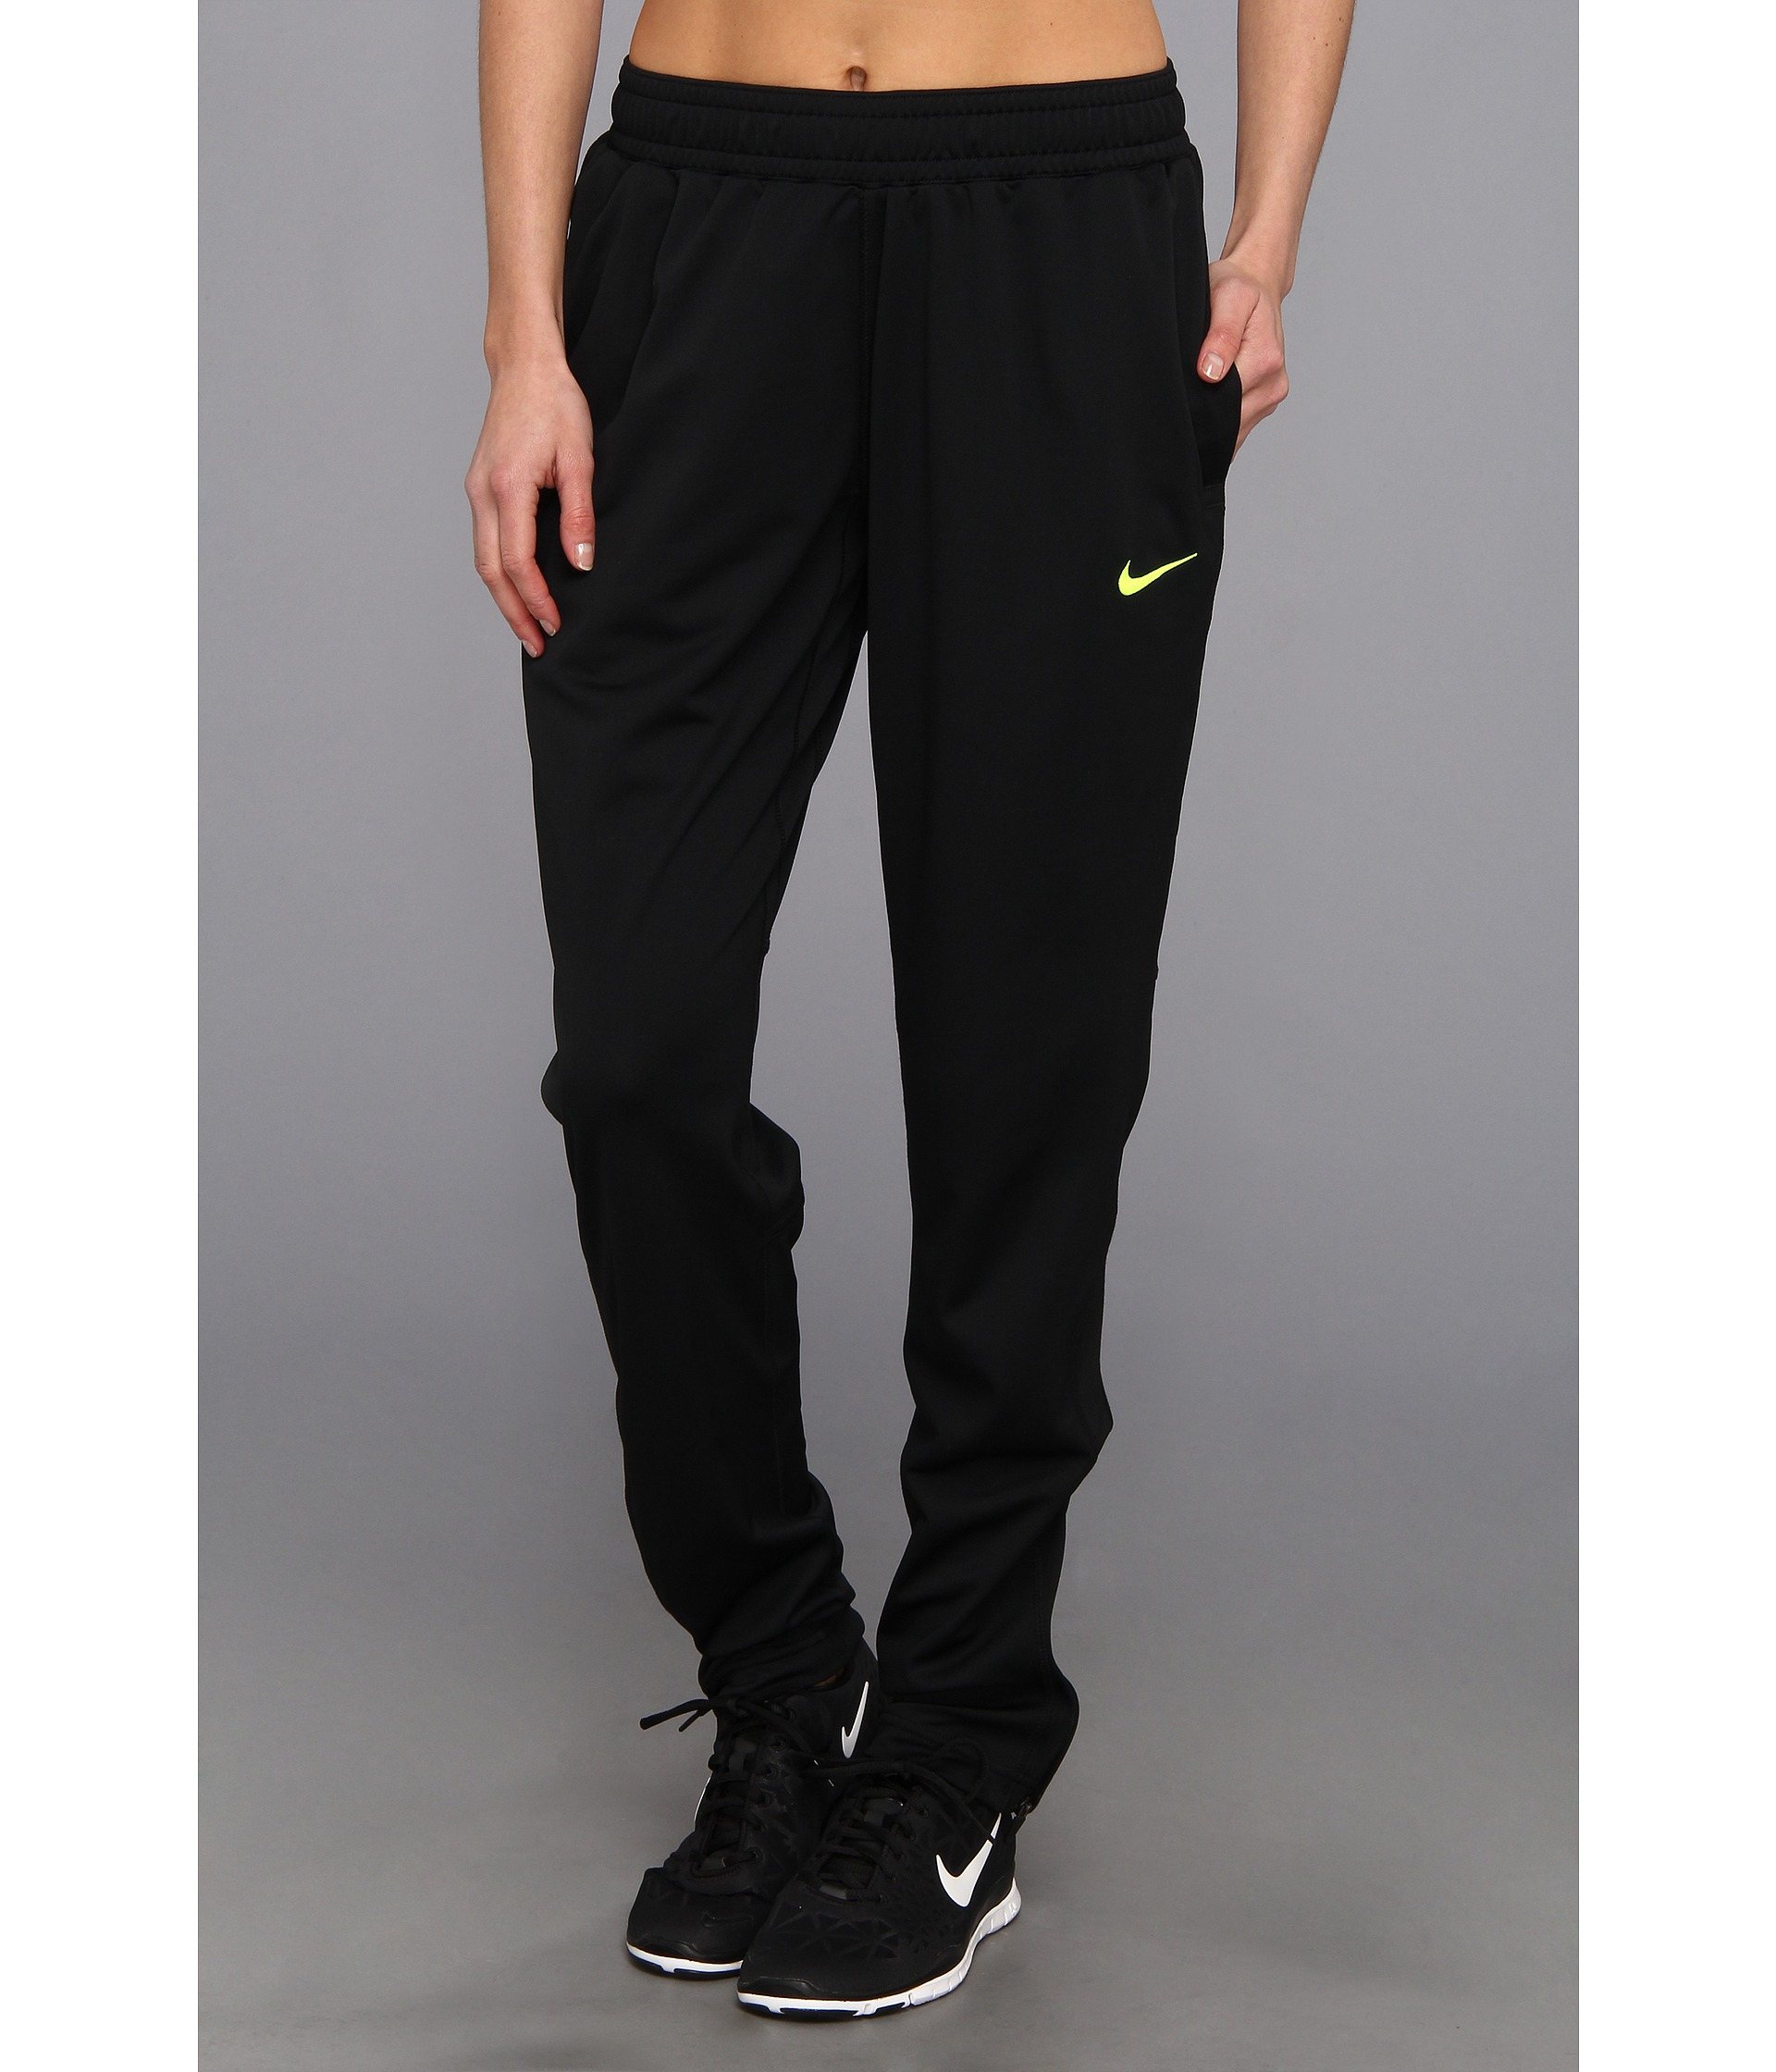 Beautiful Nike Legend Pant Collection Now Available  Nike Insider